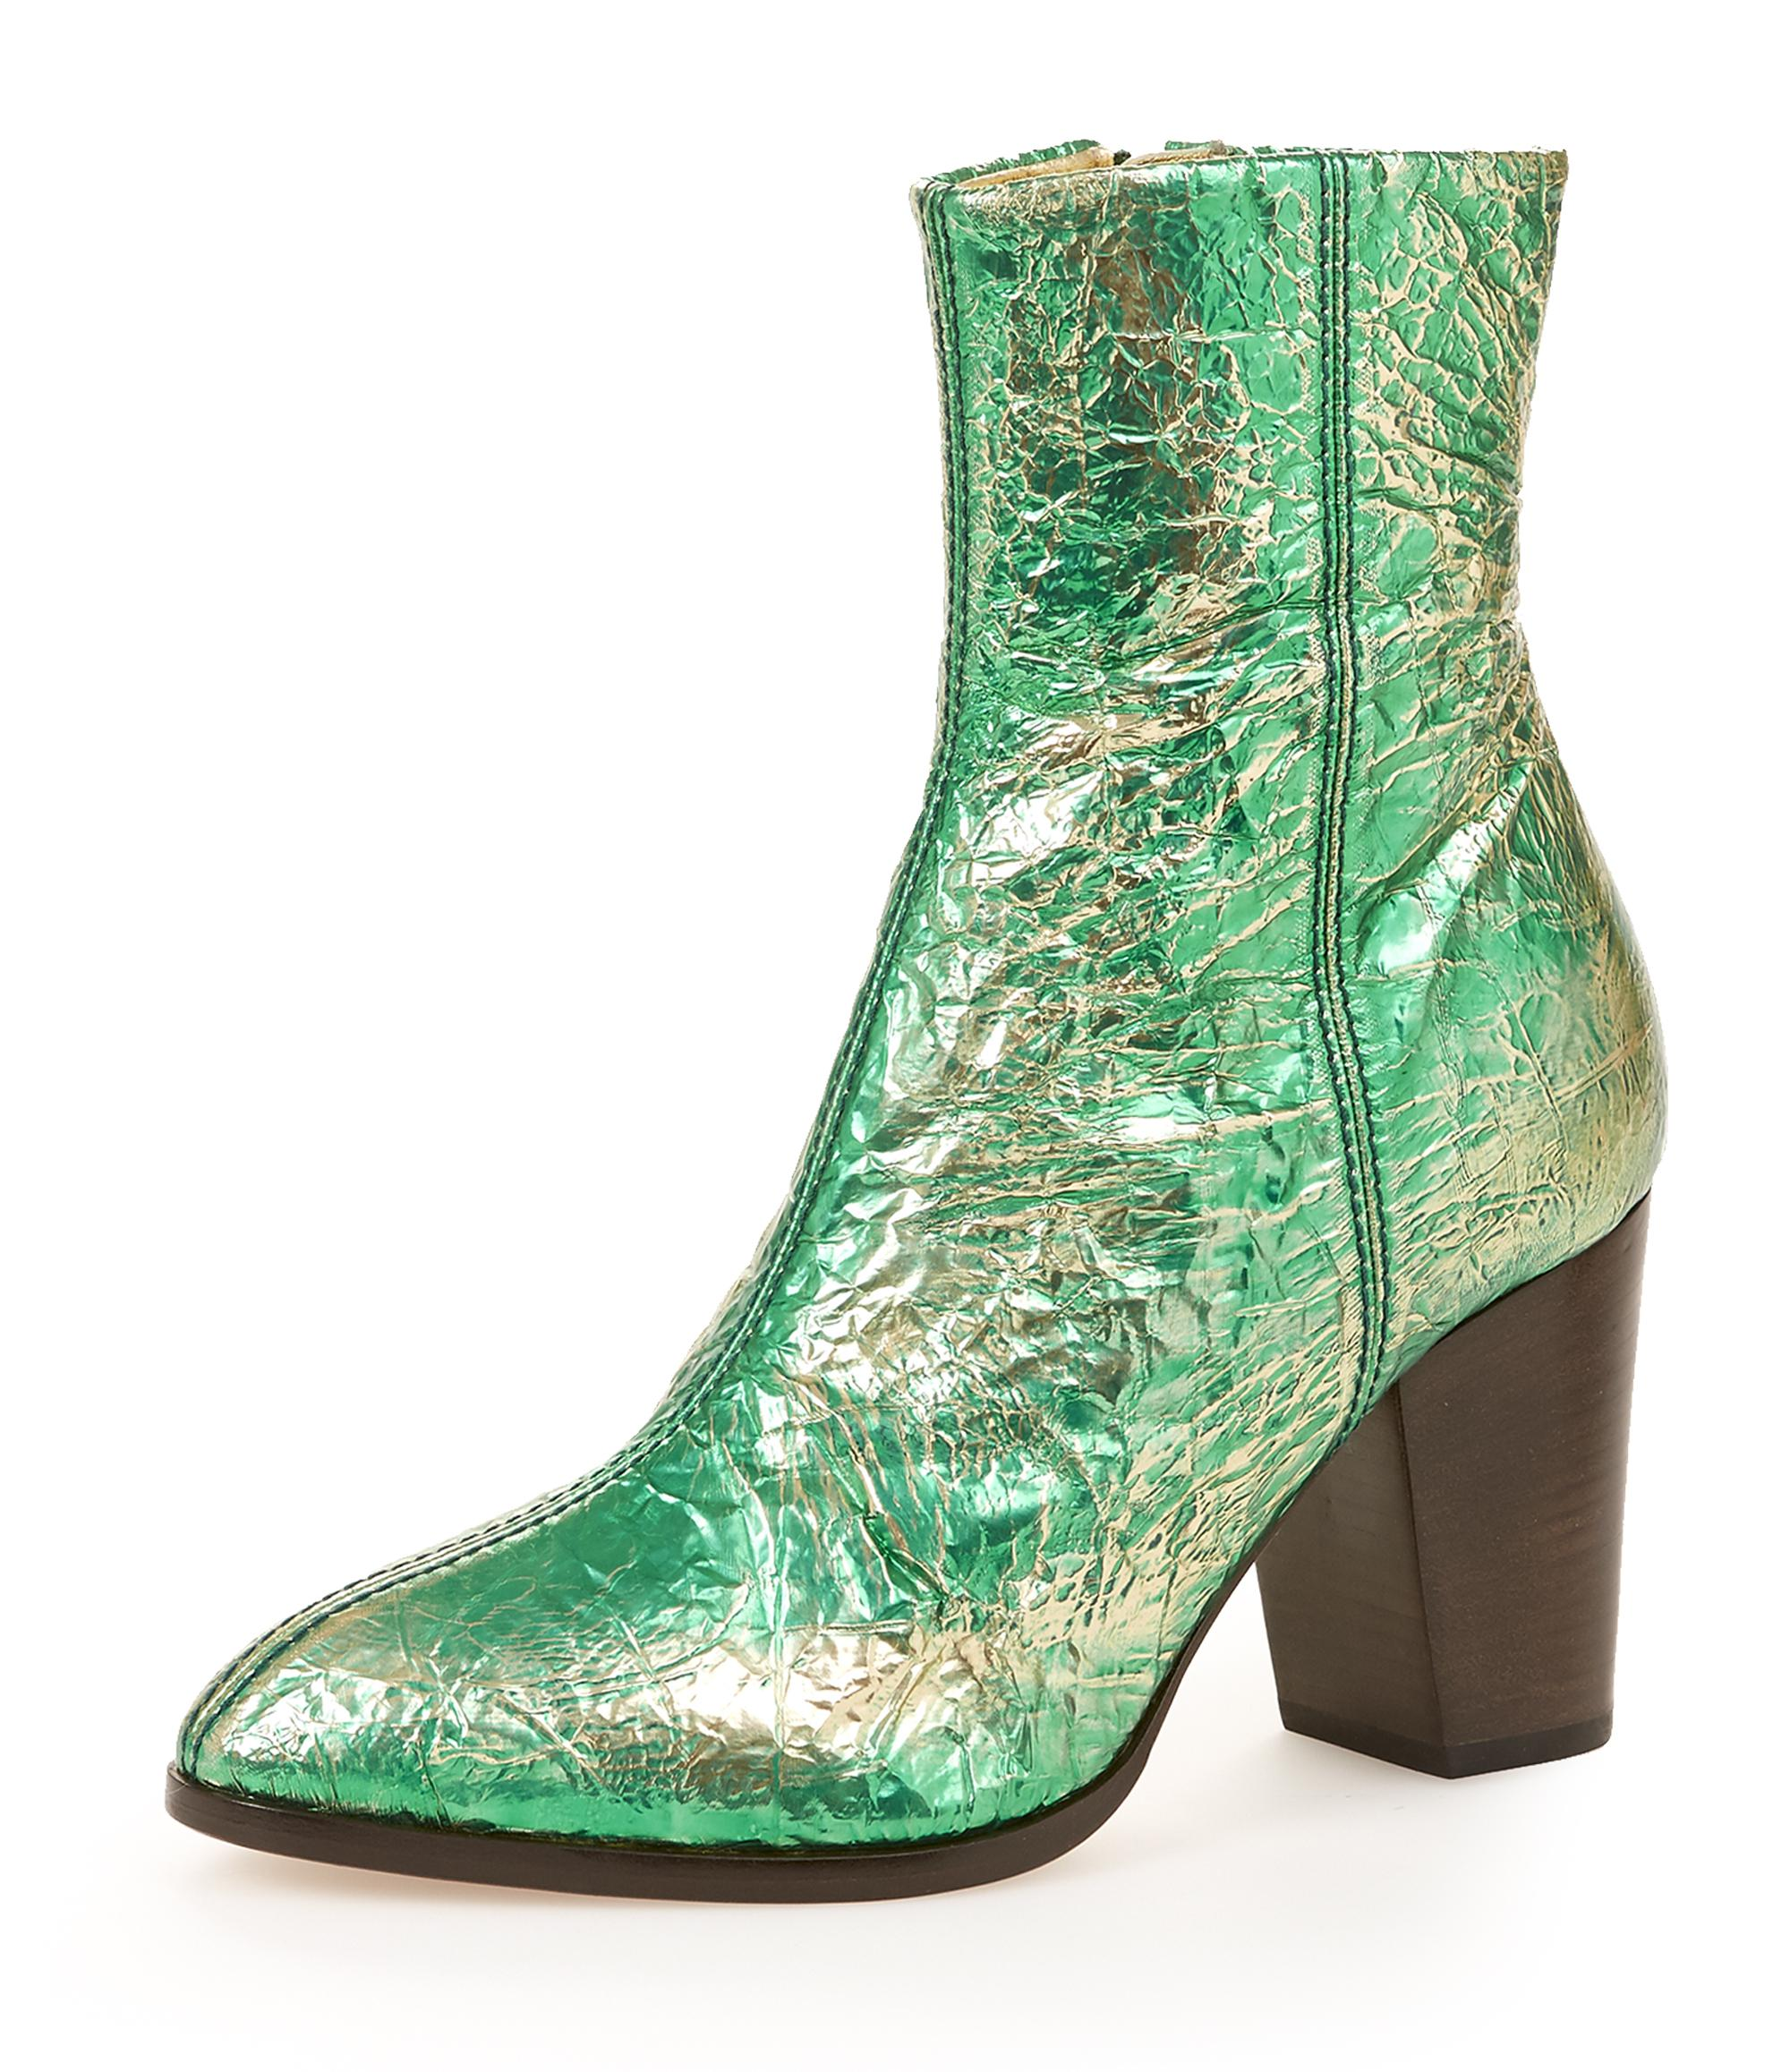 sale fake cheap sale sast Vivienne Westwood Leather Ankle Boots perfect for sale fake sale online bXgug